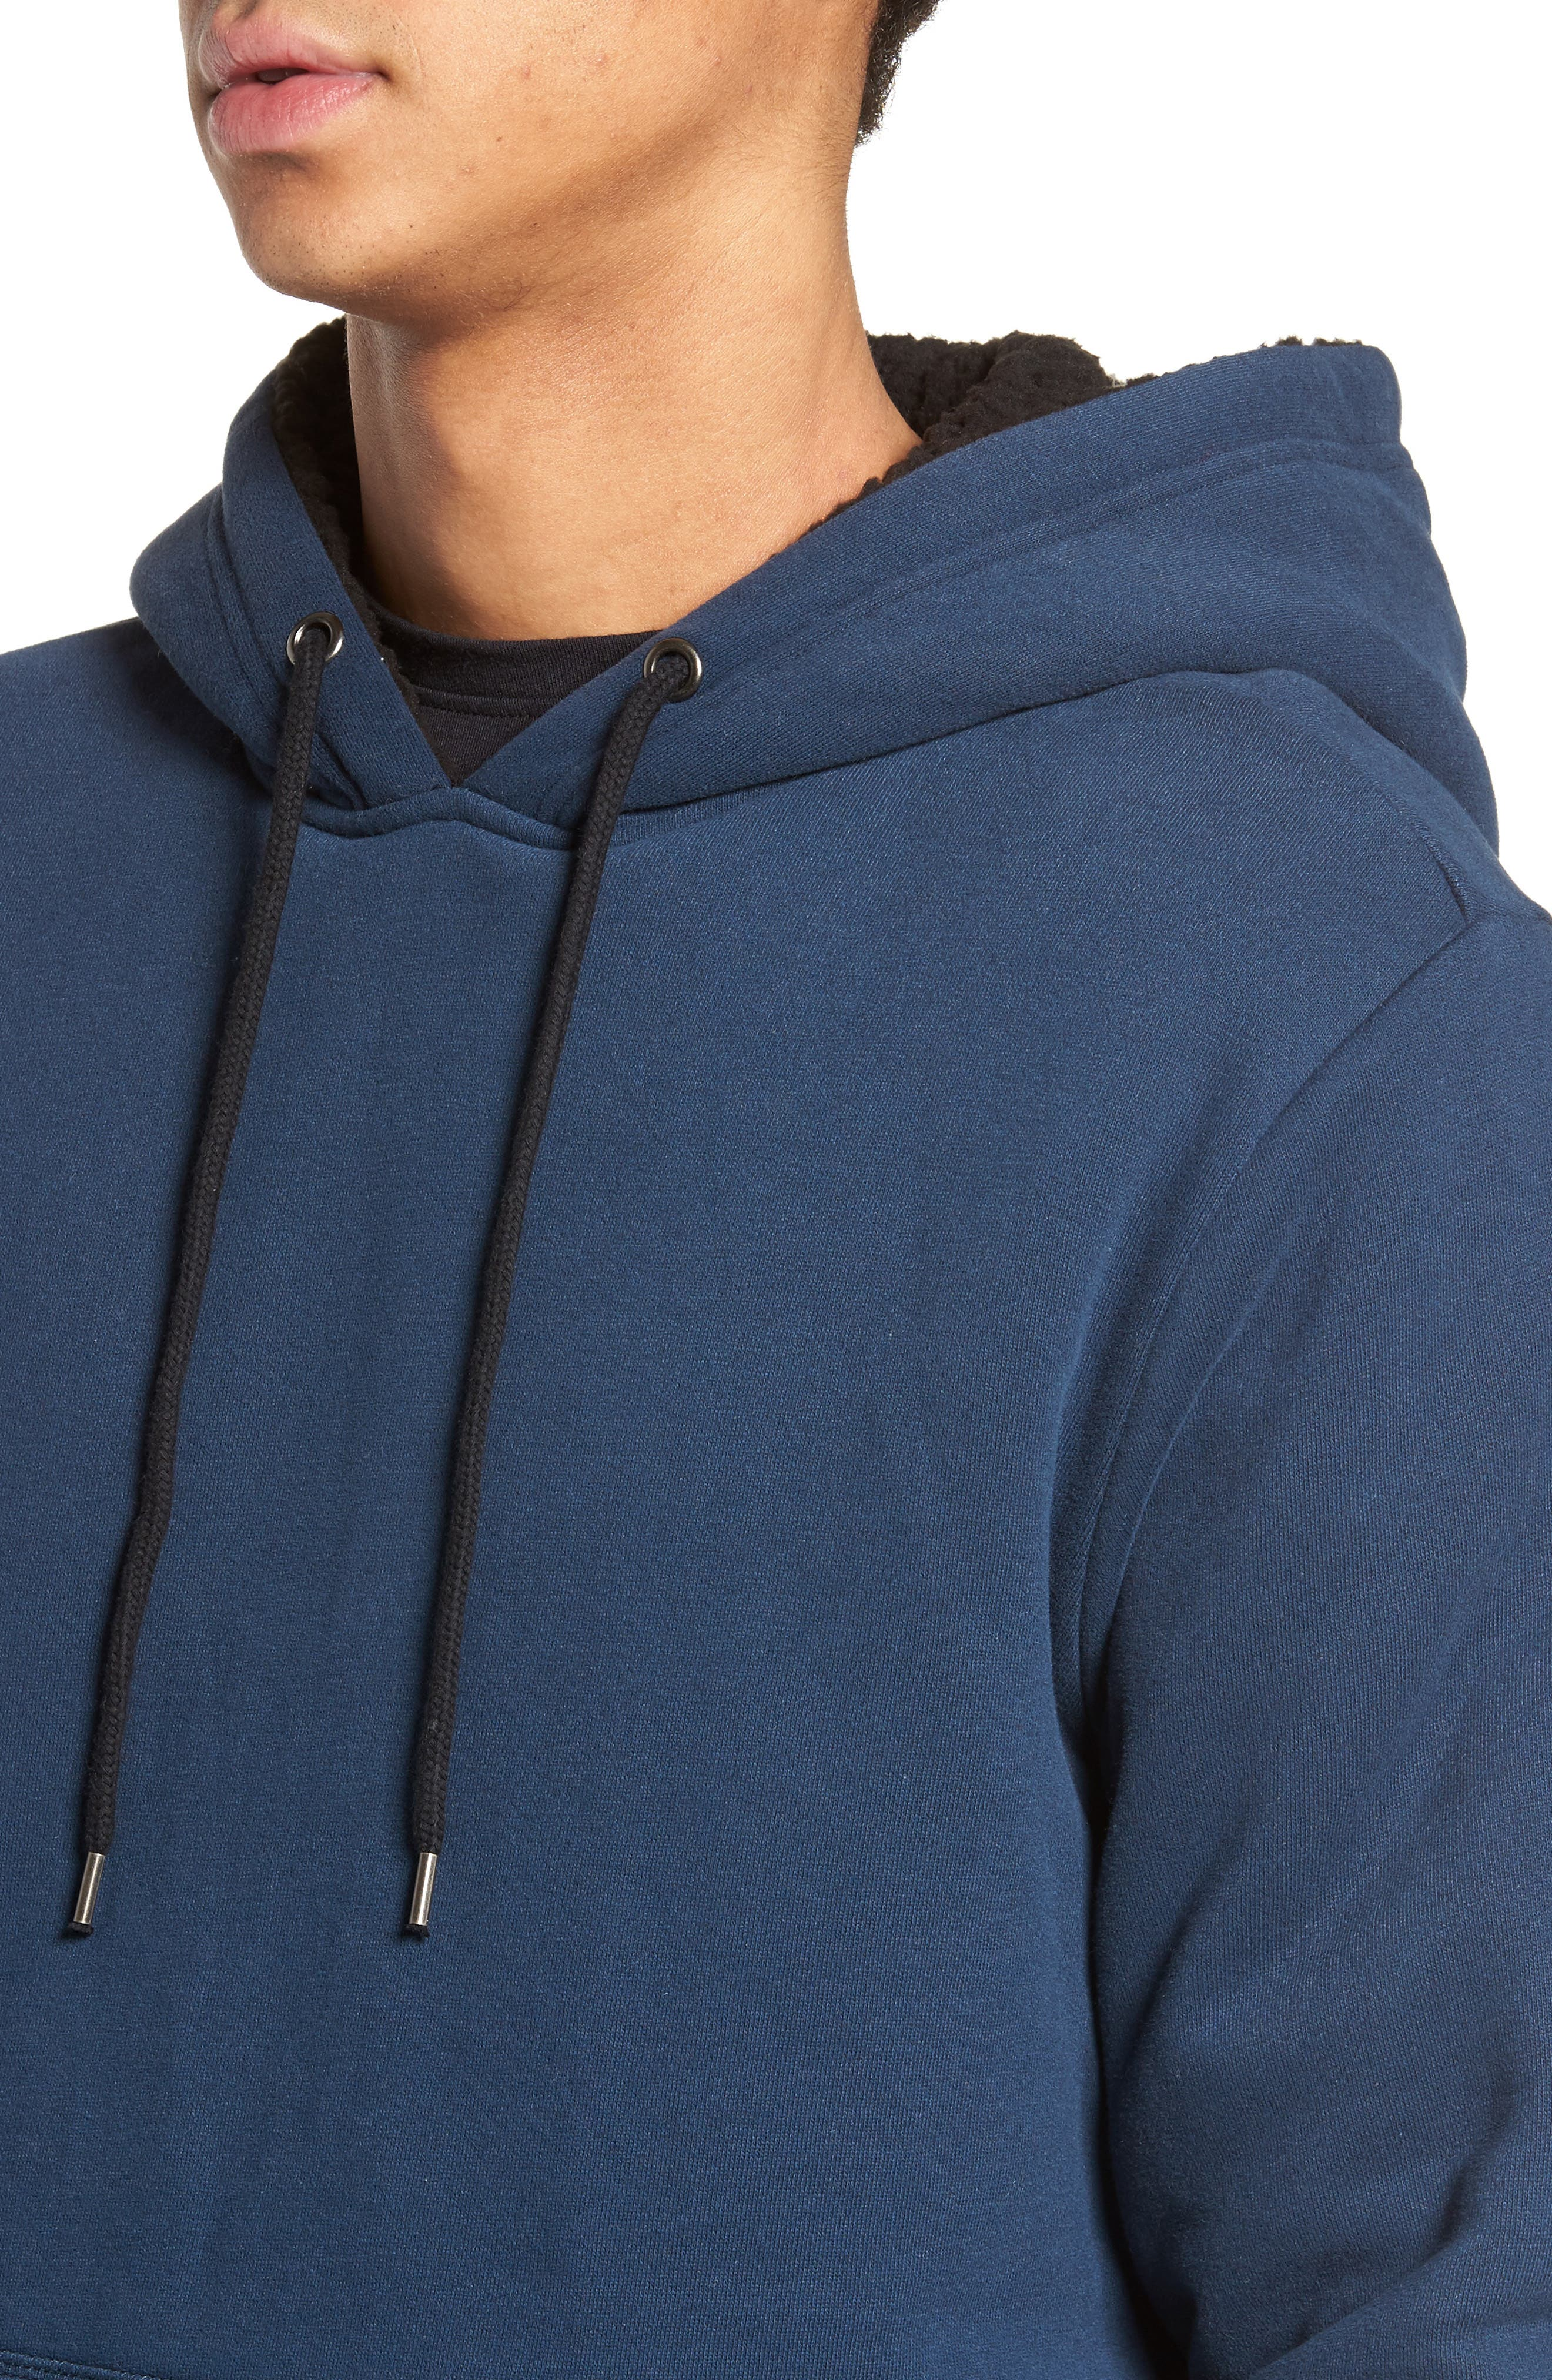 Staple Faux Shearling Trim Hoodie,                             Alternate thumbnail 4, color,                             Navy